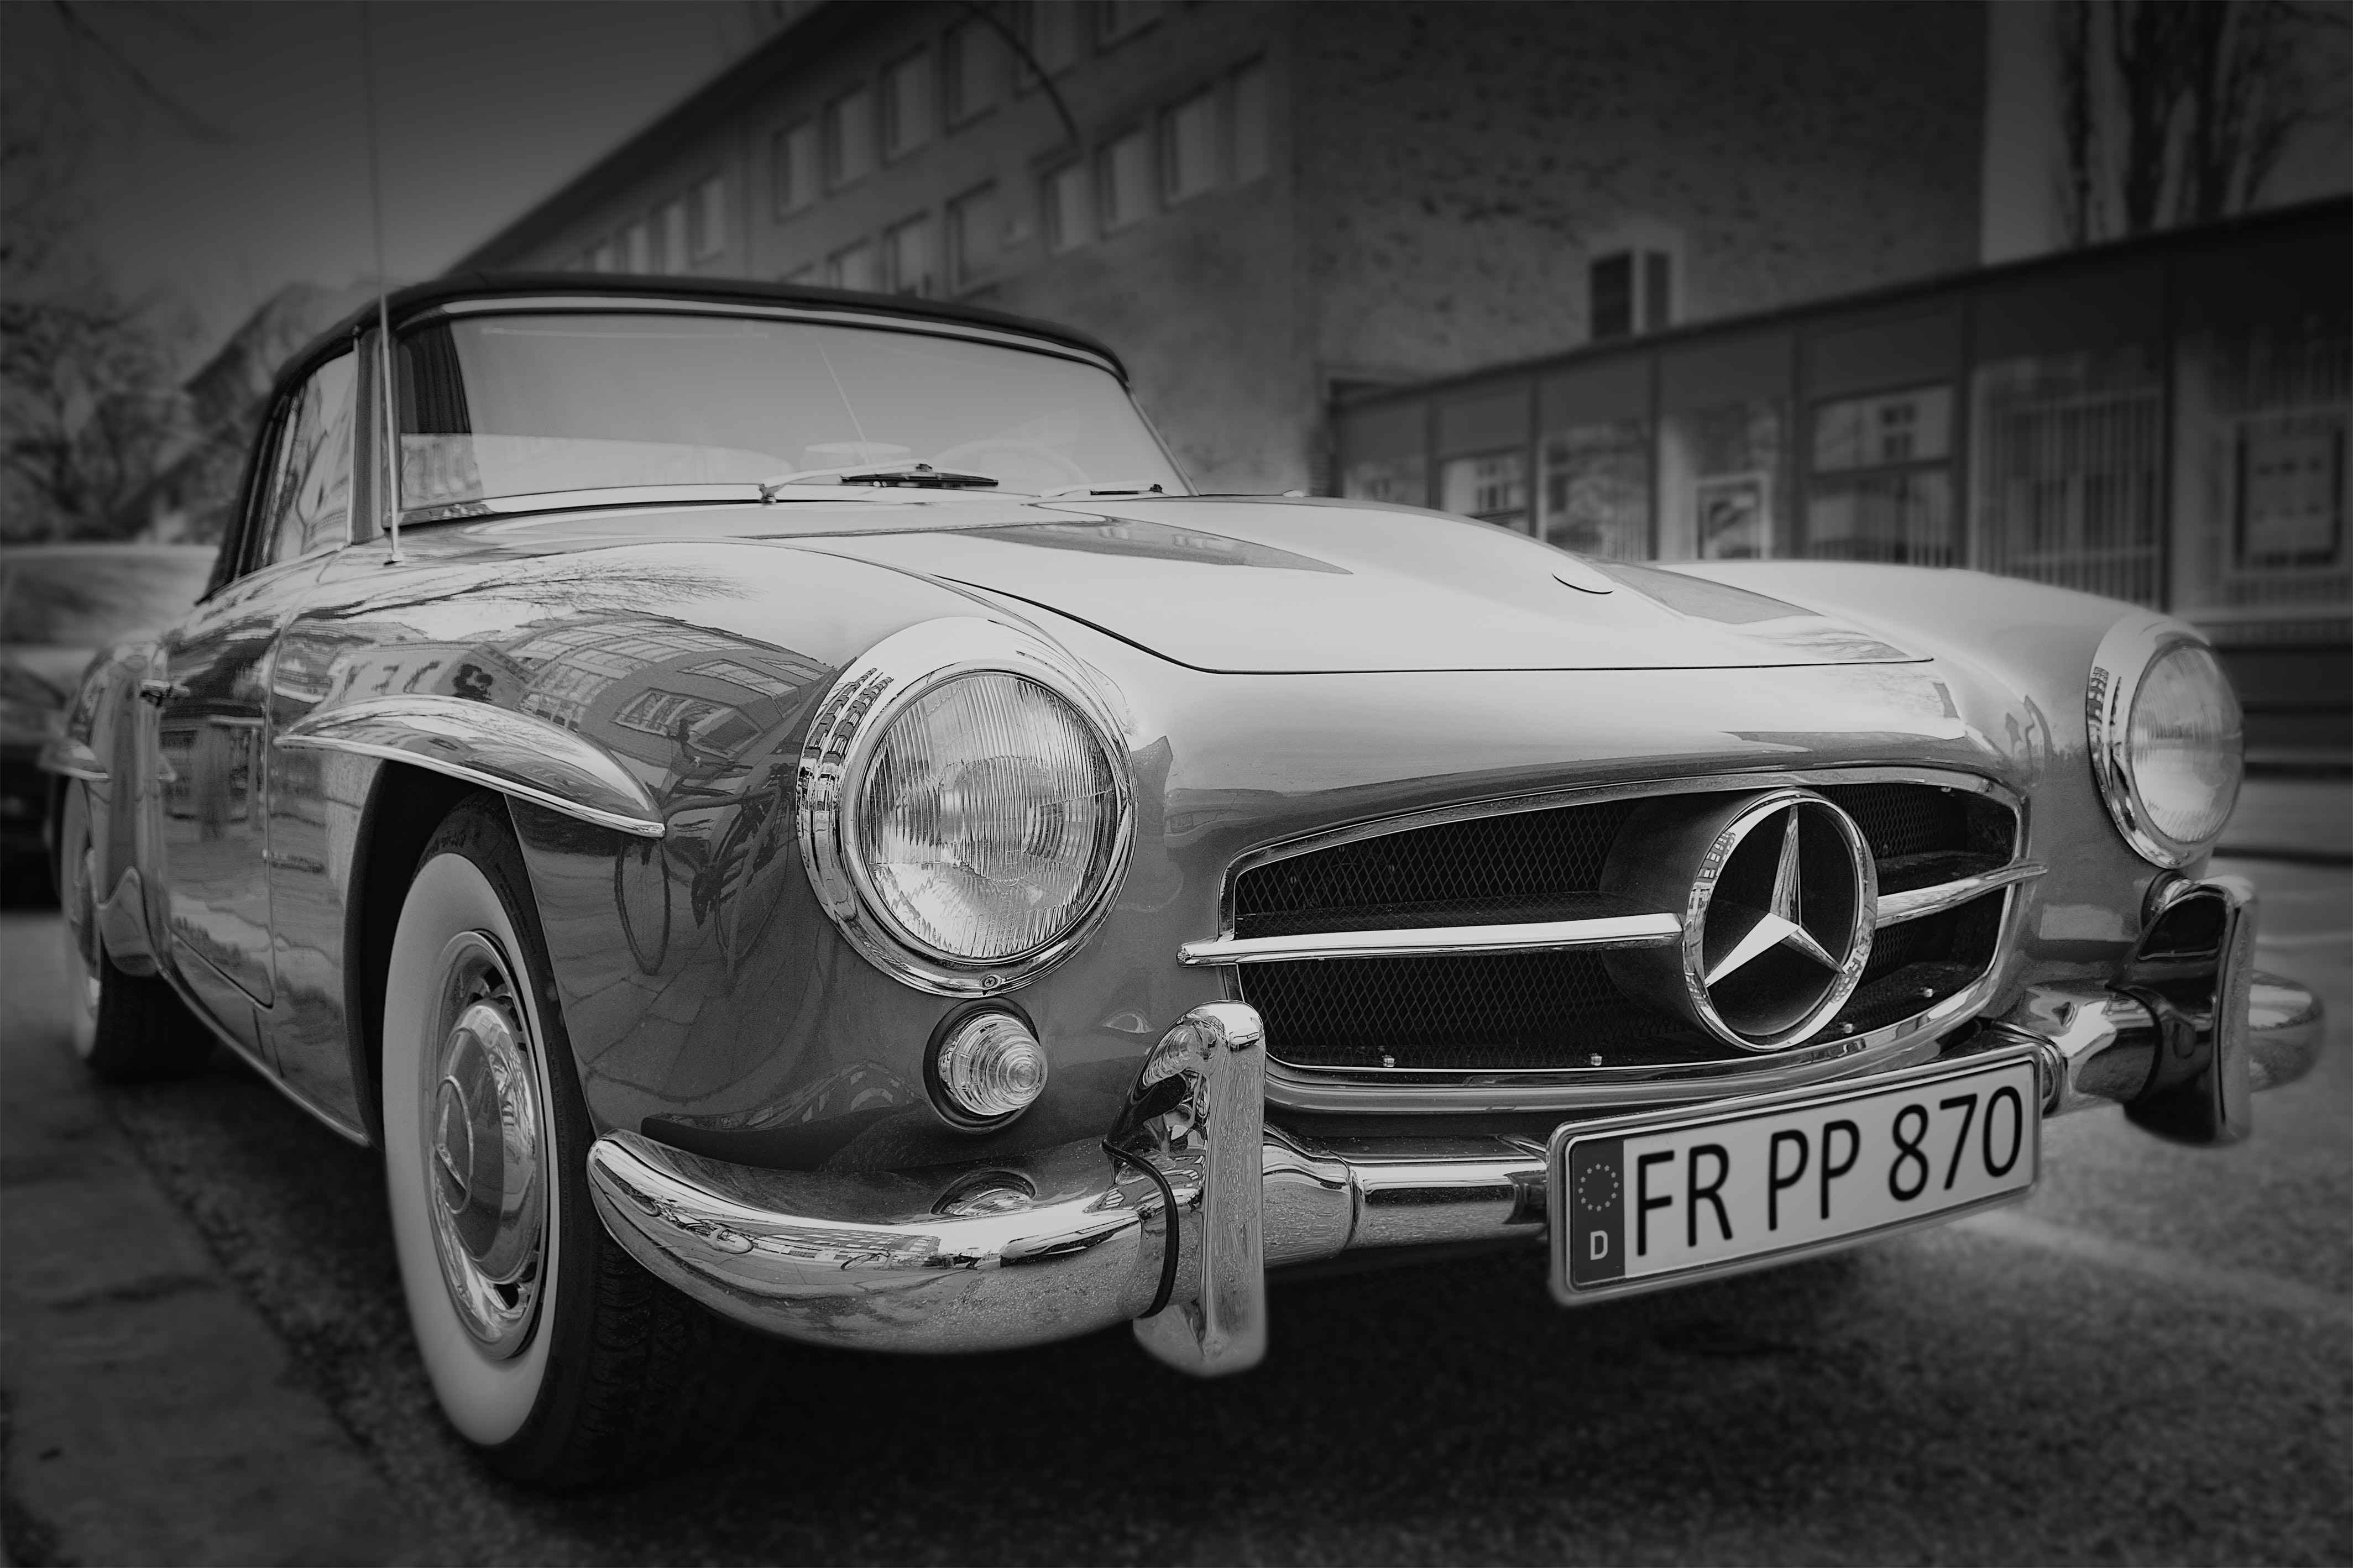 Free Photo Grayscale Photography Of Classic Mercedes Benz Car Automobile Automotive Black And White Free Download Jooinn